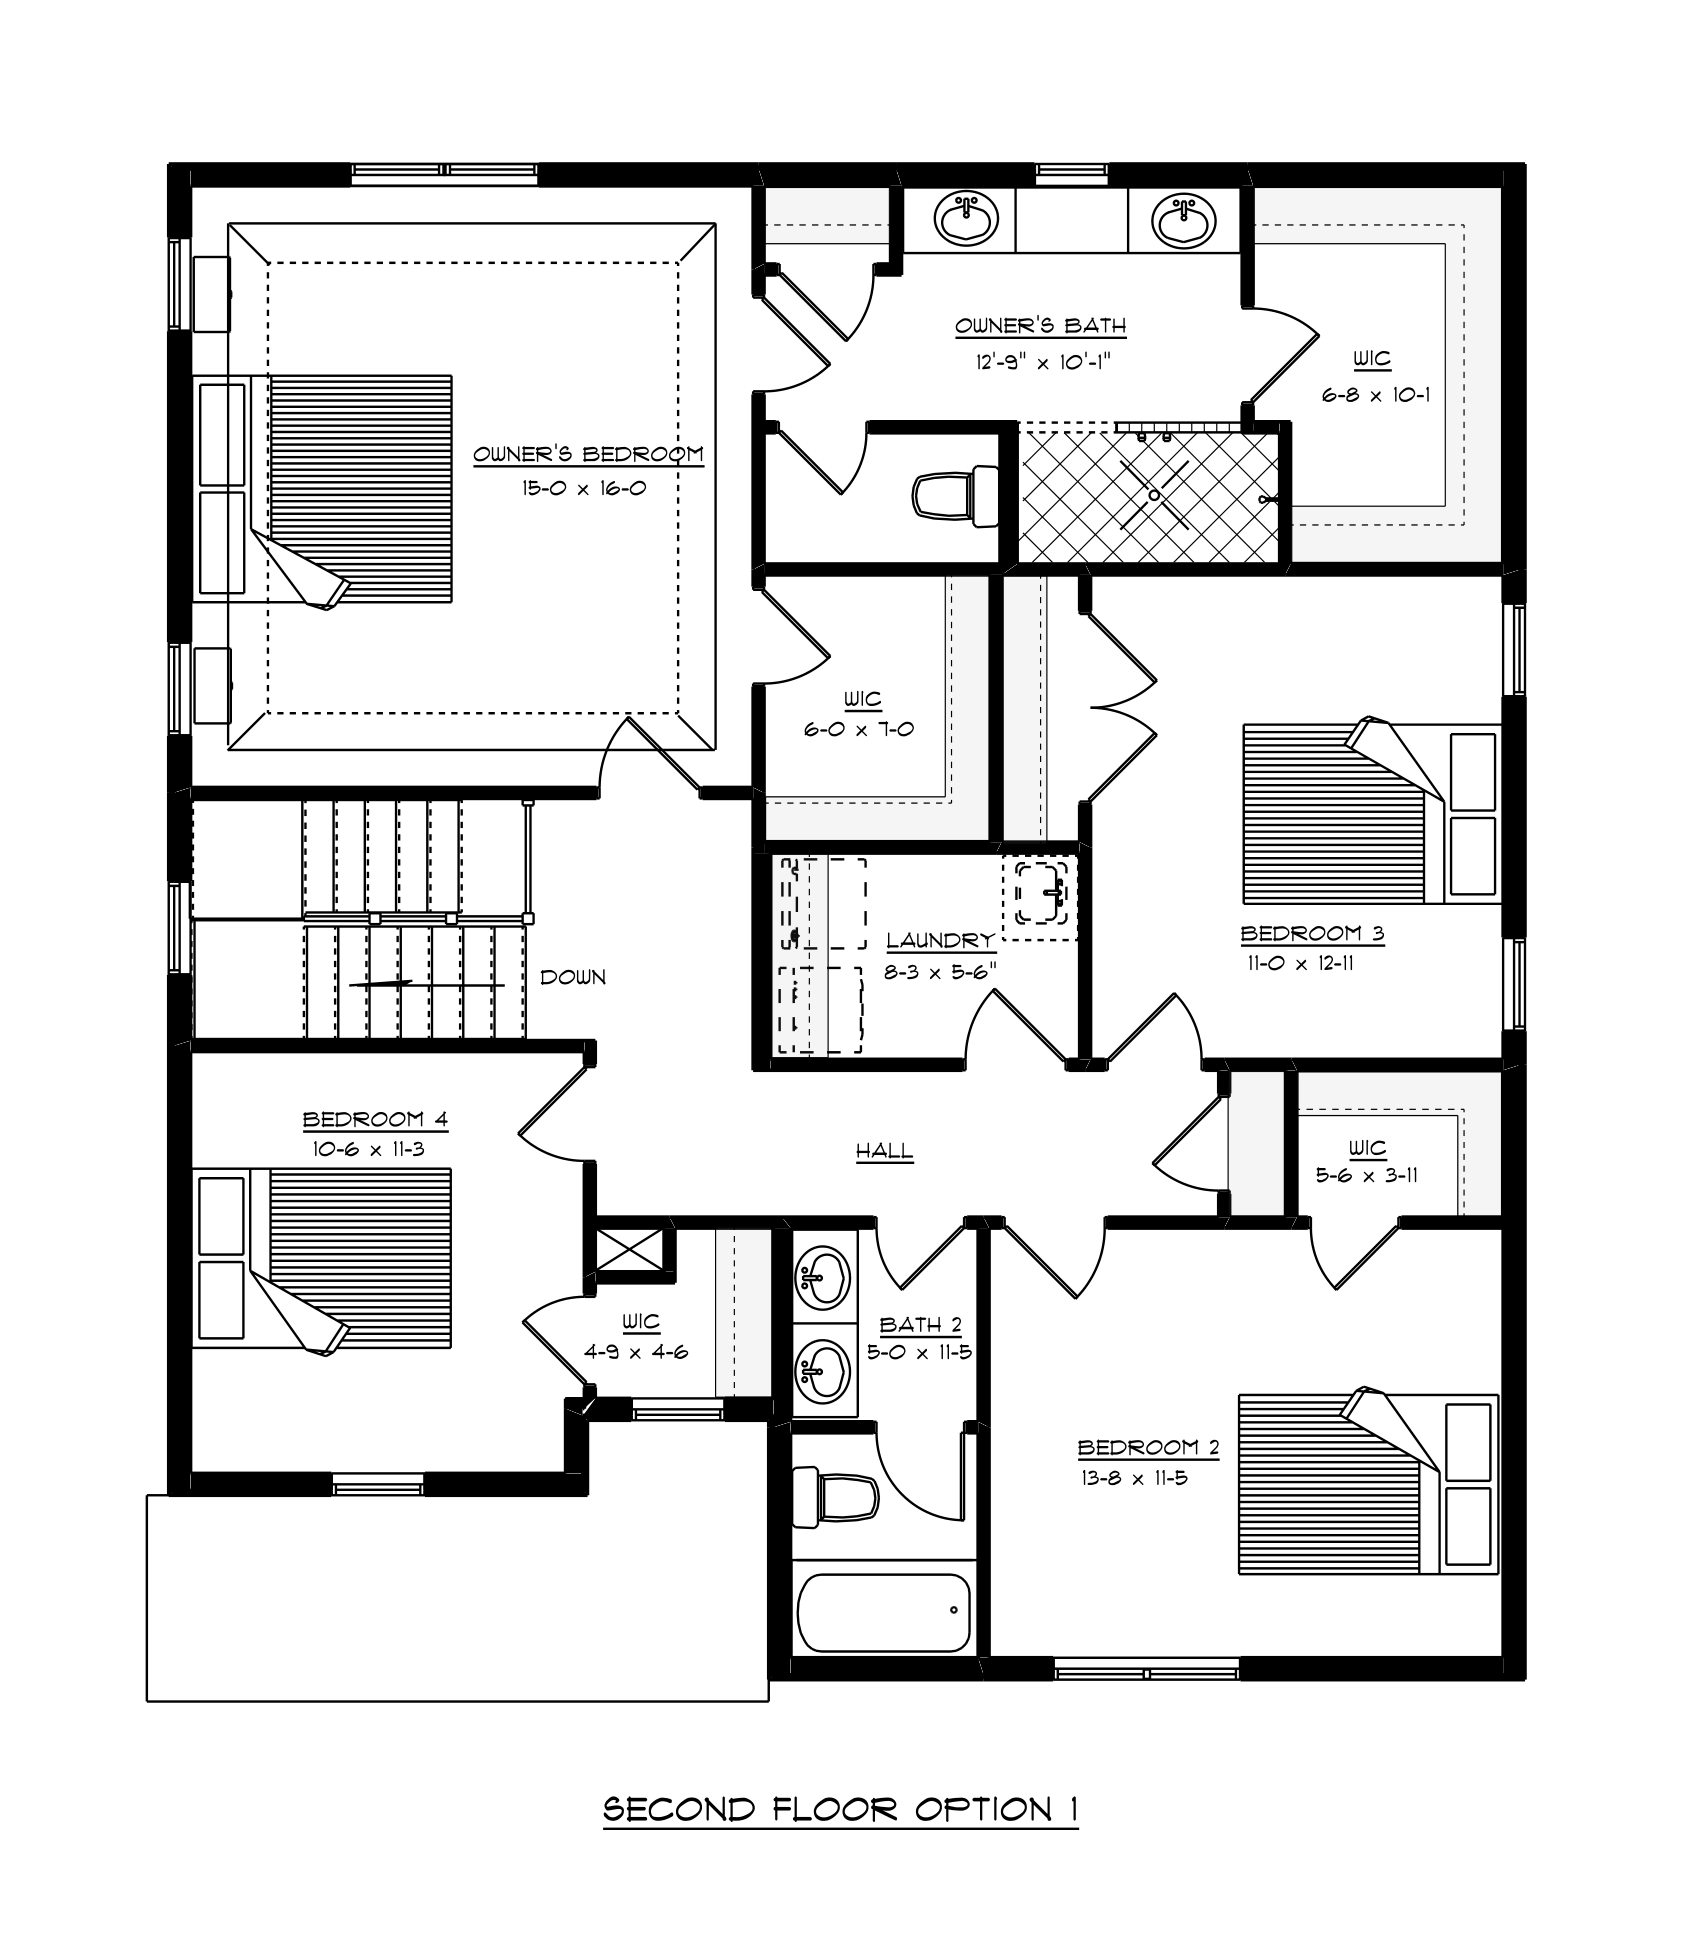 2nd Floor Plans of the Stockton built by Craig Builders